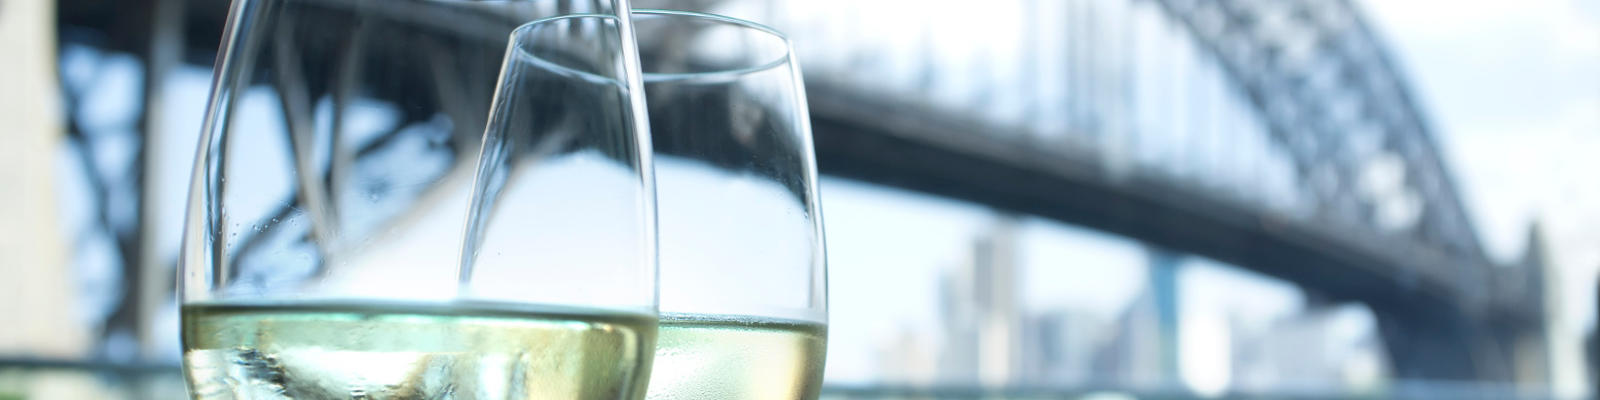 Close up of two glasses of wine with Sydney Harbour Bridge in the background